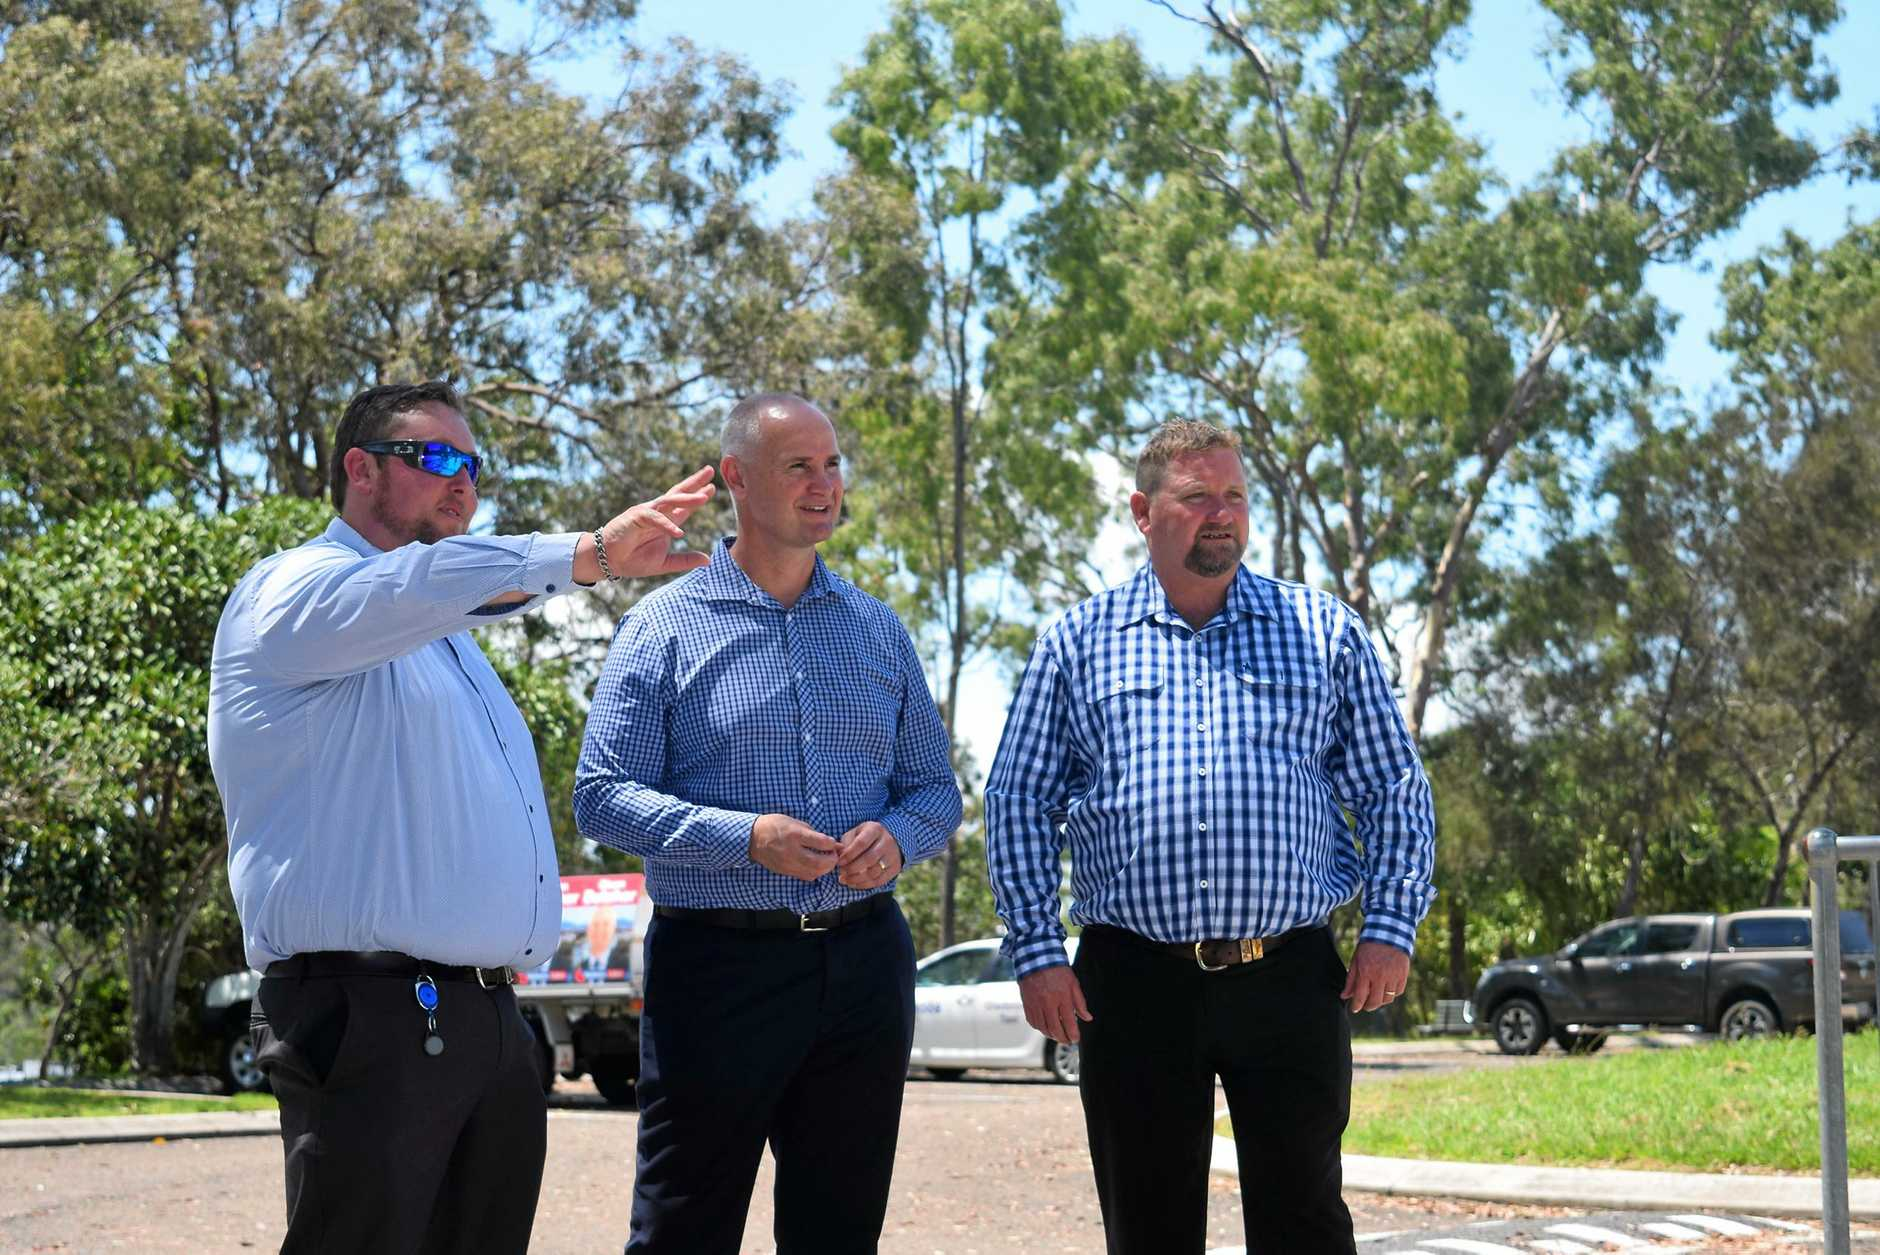 WELCOMED HERE: Gladstone Region councillor Kahn Goodluck, member for Gladstone Glenn Butcher and councillor Peter Masters at the area where the new pump track in Boyne Island will be built.